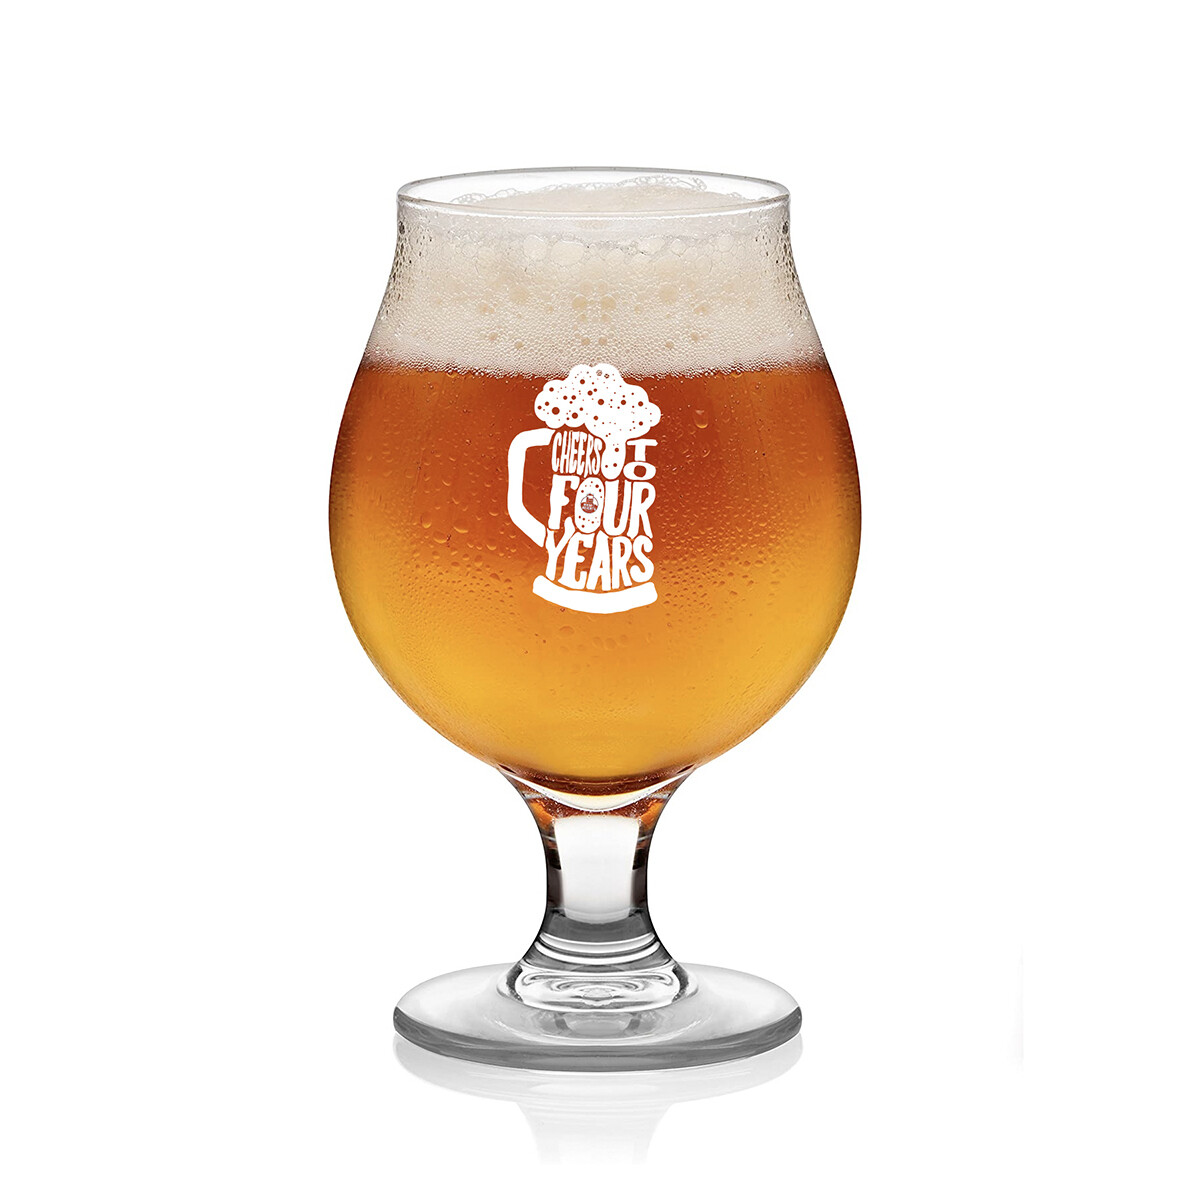 Cheers to 4 Years - Anniversary  16 OZ Tulip Glasses (Pickup only in Tasting Room-check Social Media for Hours or call 615.490.6901 for details).